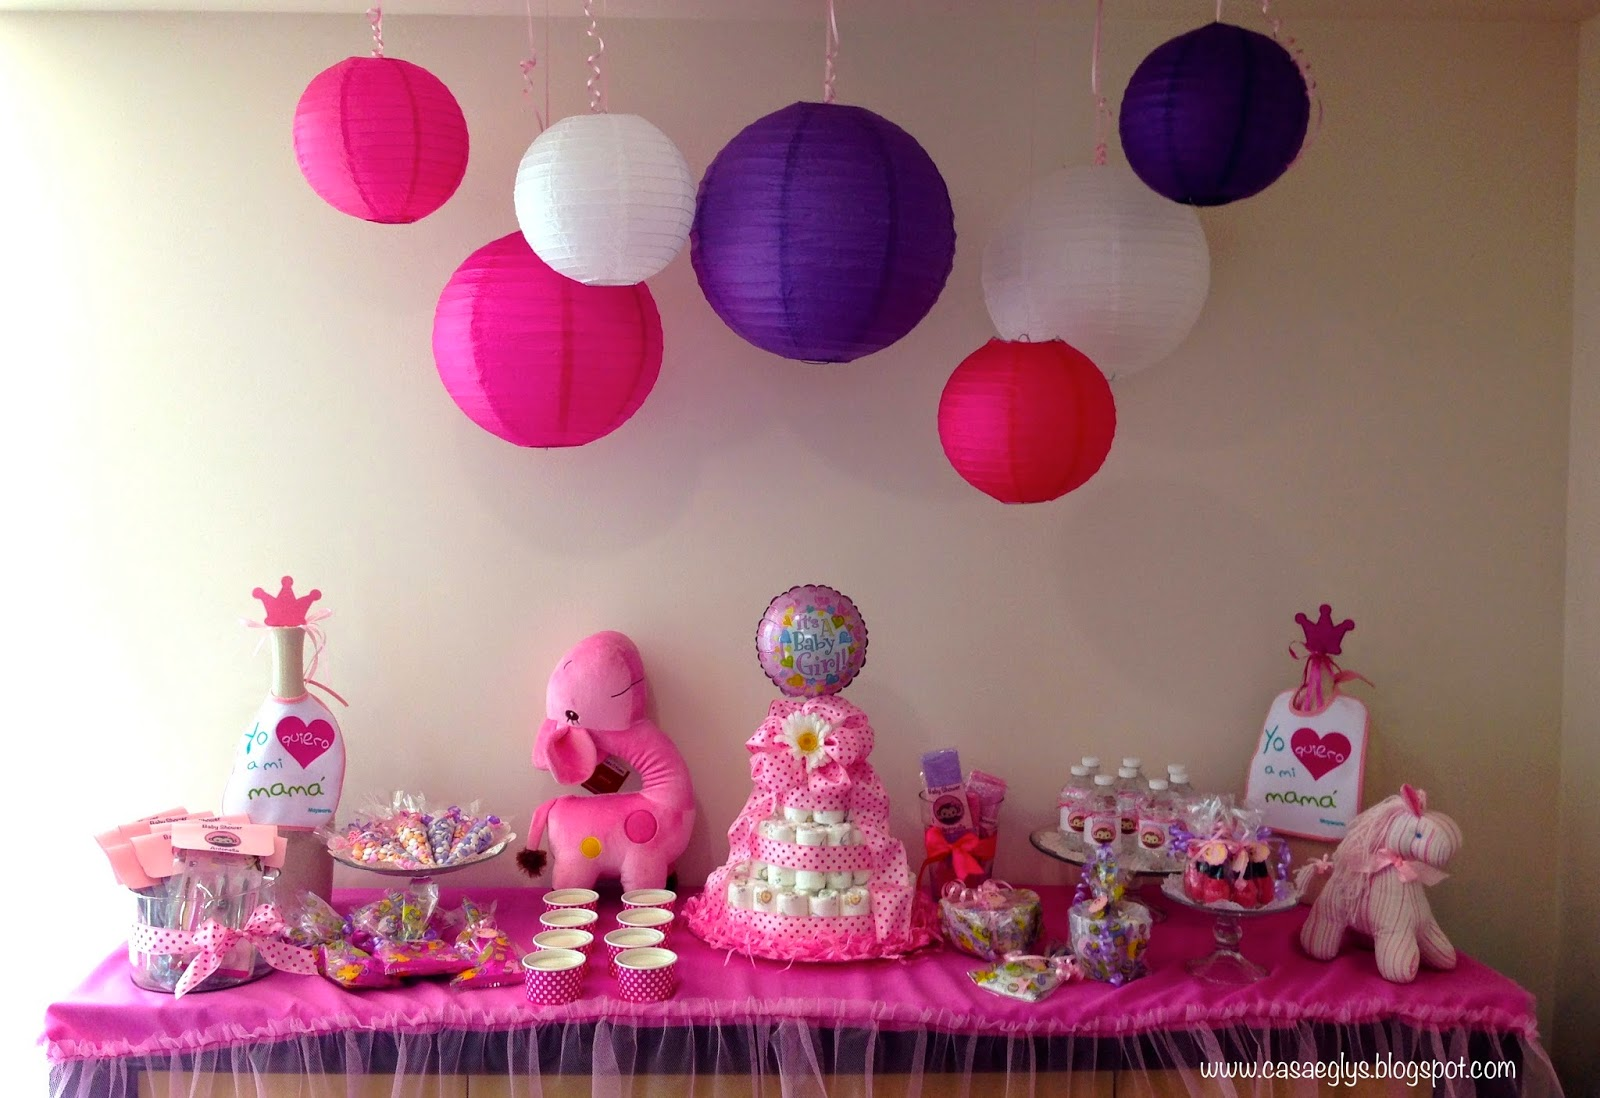 Decoracion para baby shower en casa - Decoracion de la casa ...